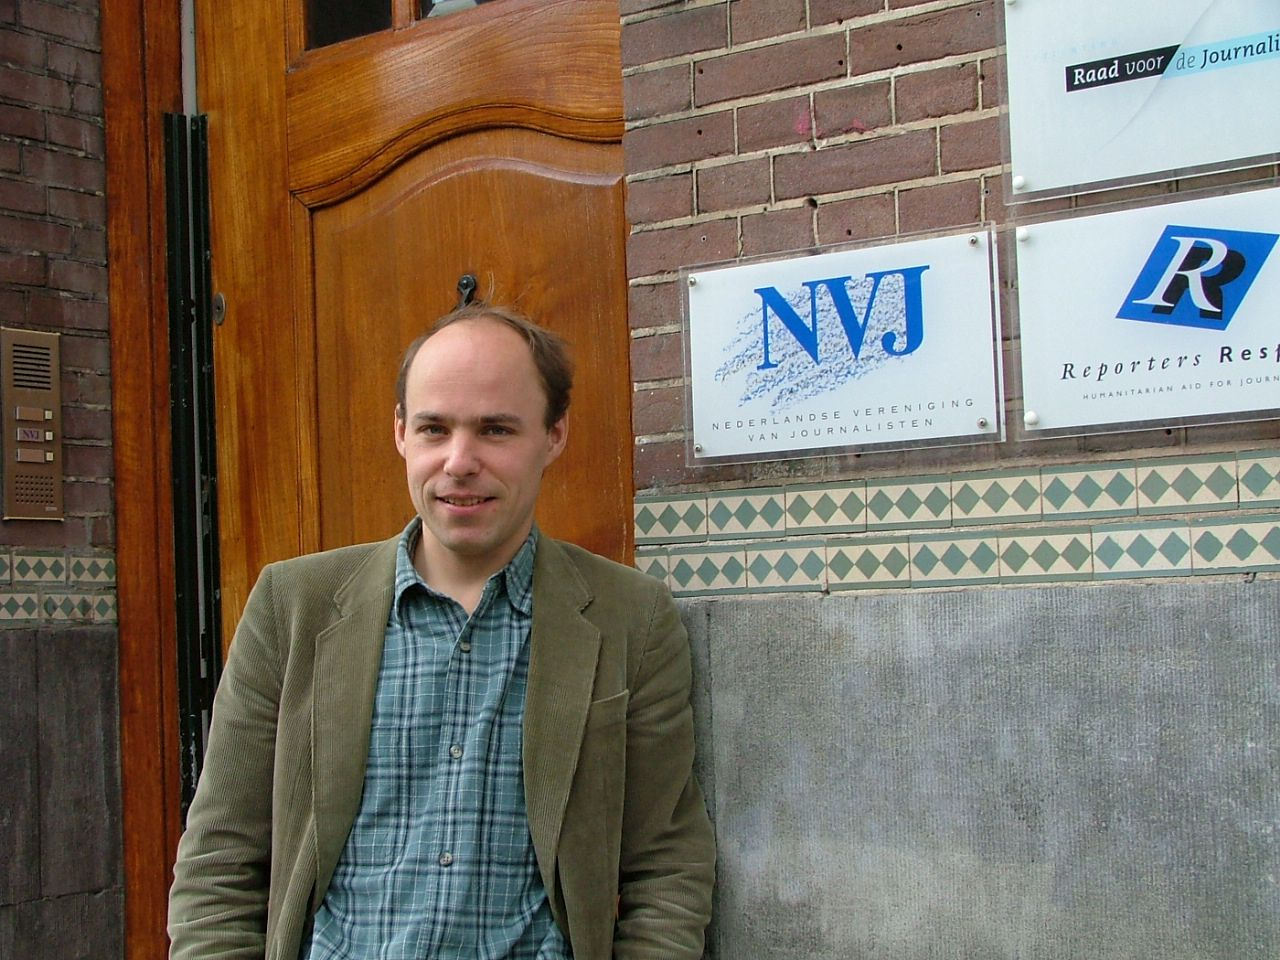 Thomas Bruning is secretaris van de Nederlandse Vereniging van Journalisten (NVJ).